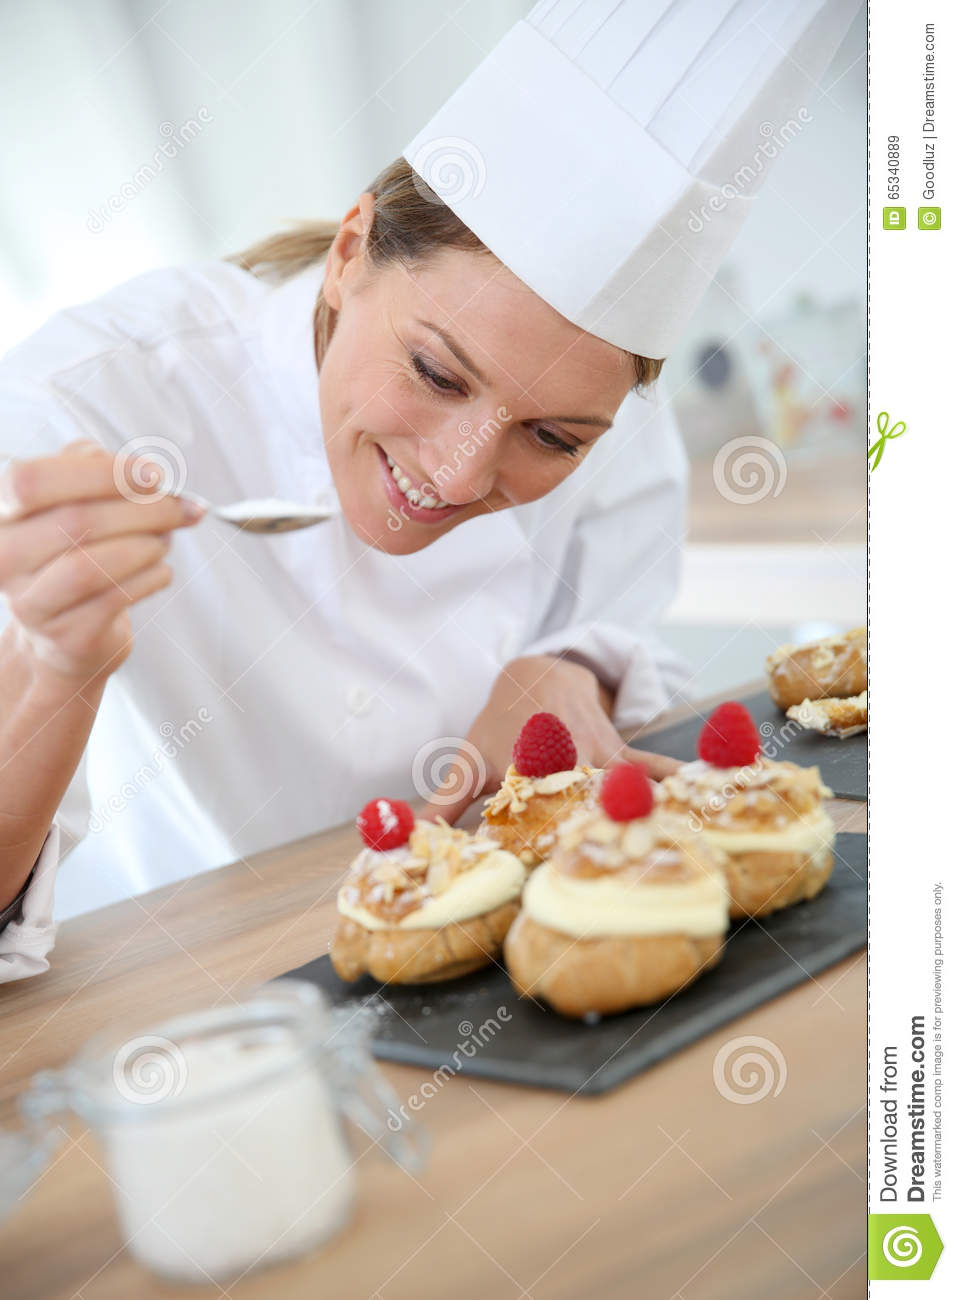 professional pastry chef making deserts stock image image of